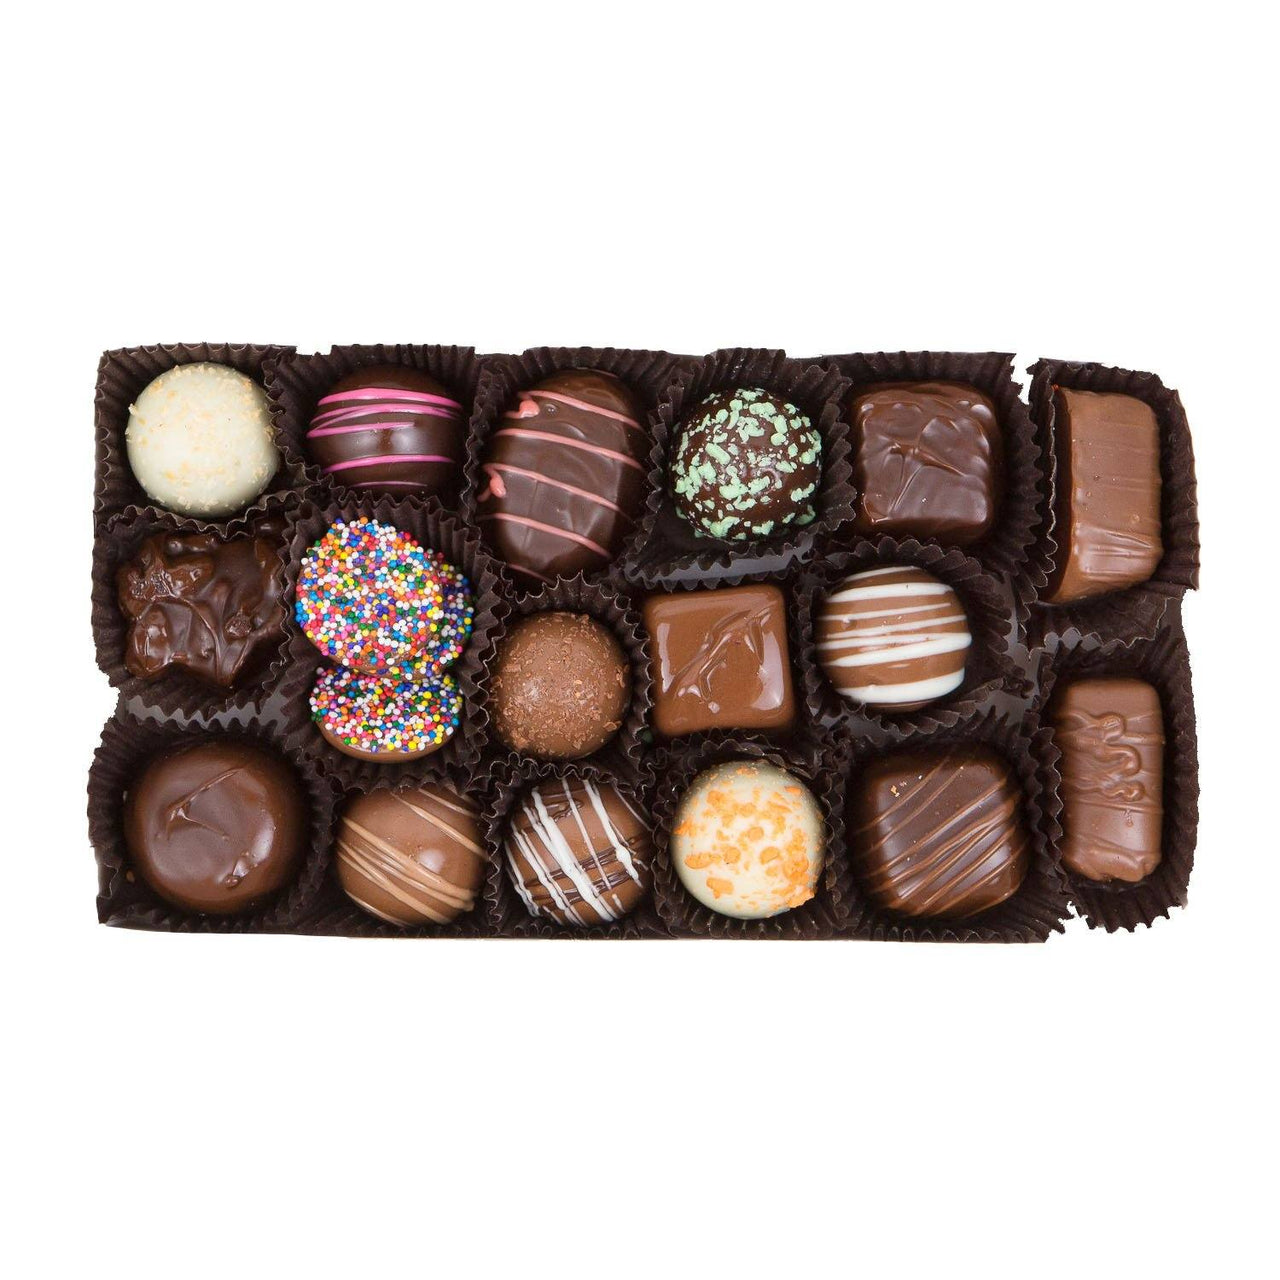 Gift Ideas for People Who Have Everything - Assorted Chocolate Gift Box - Jackie's Chocolate